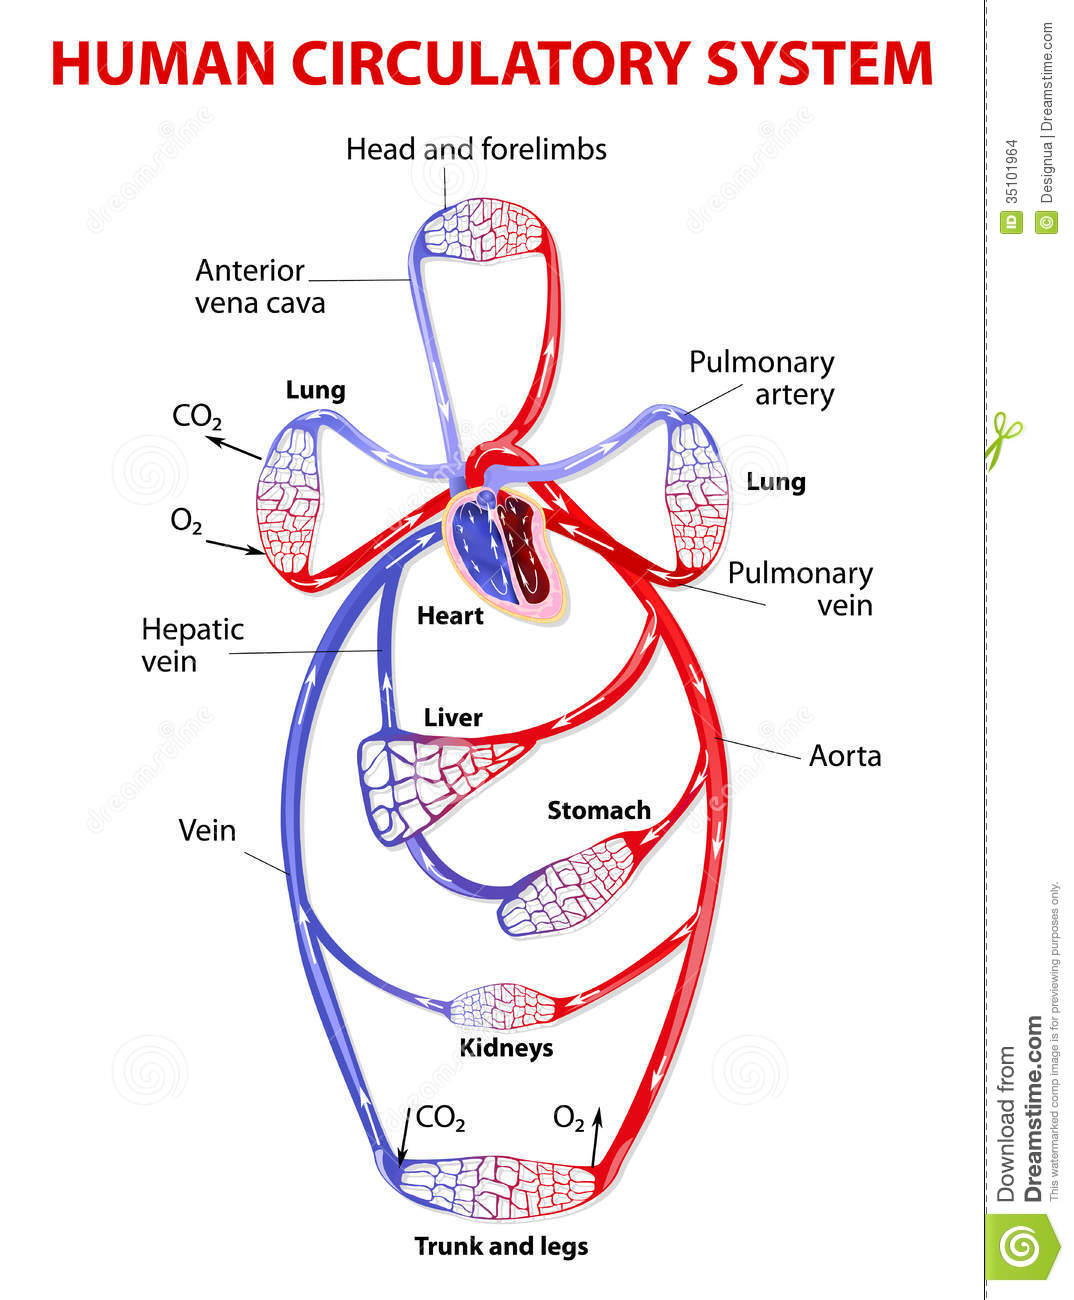 cow circulatory system diagram wiring for off grid solar power of digestive venous get free